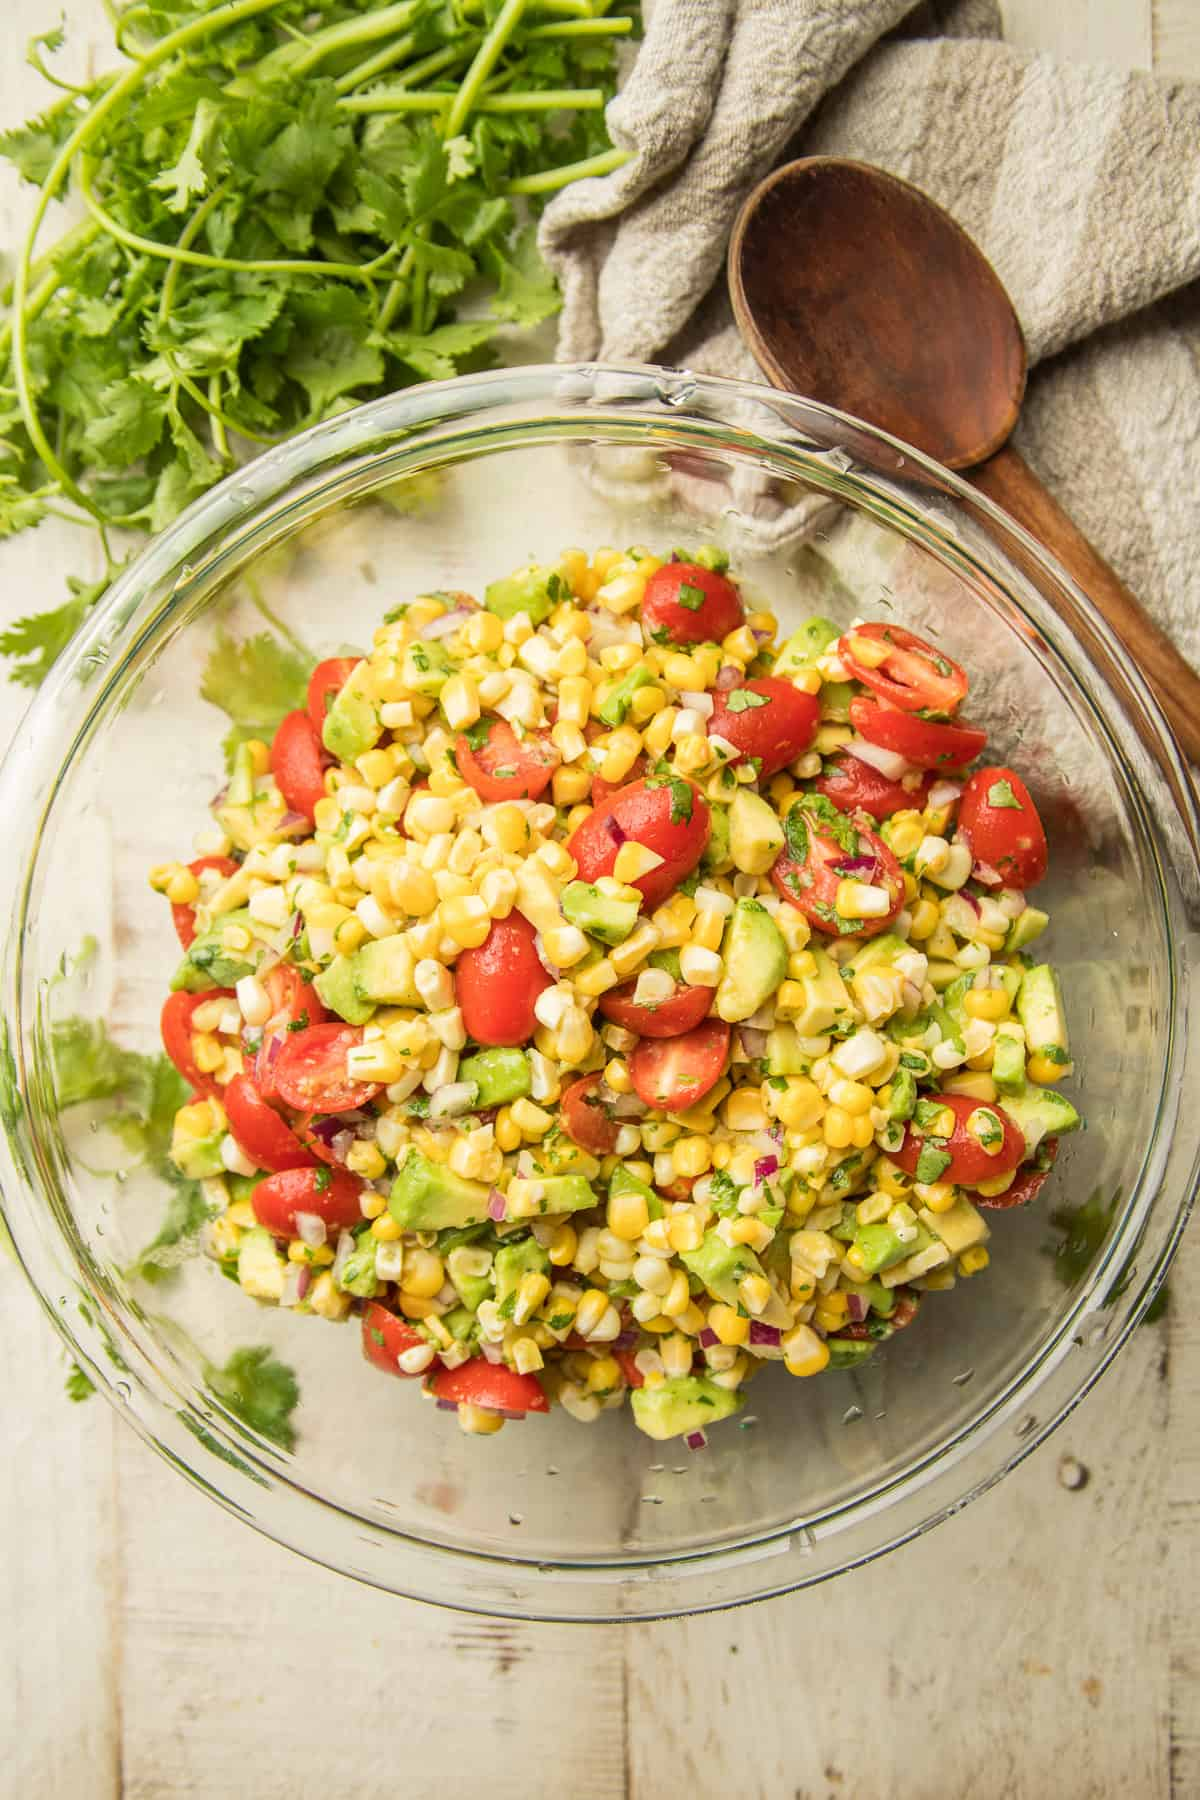 White Wooden Surface Set with Bunch of Cilantro, Bowl of Avocado Corn Salad, and Wooden Spoon